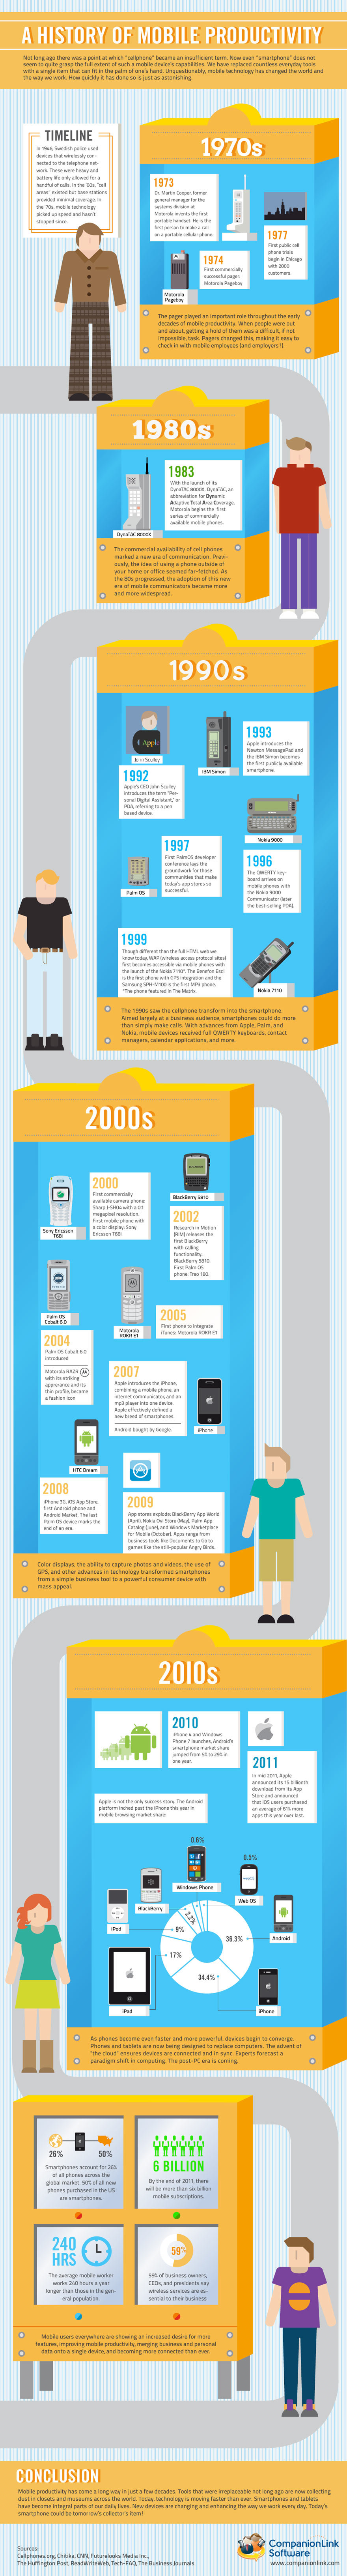 historyofproductivityonceagain - a history of mobile productivity [infographic]